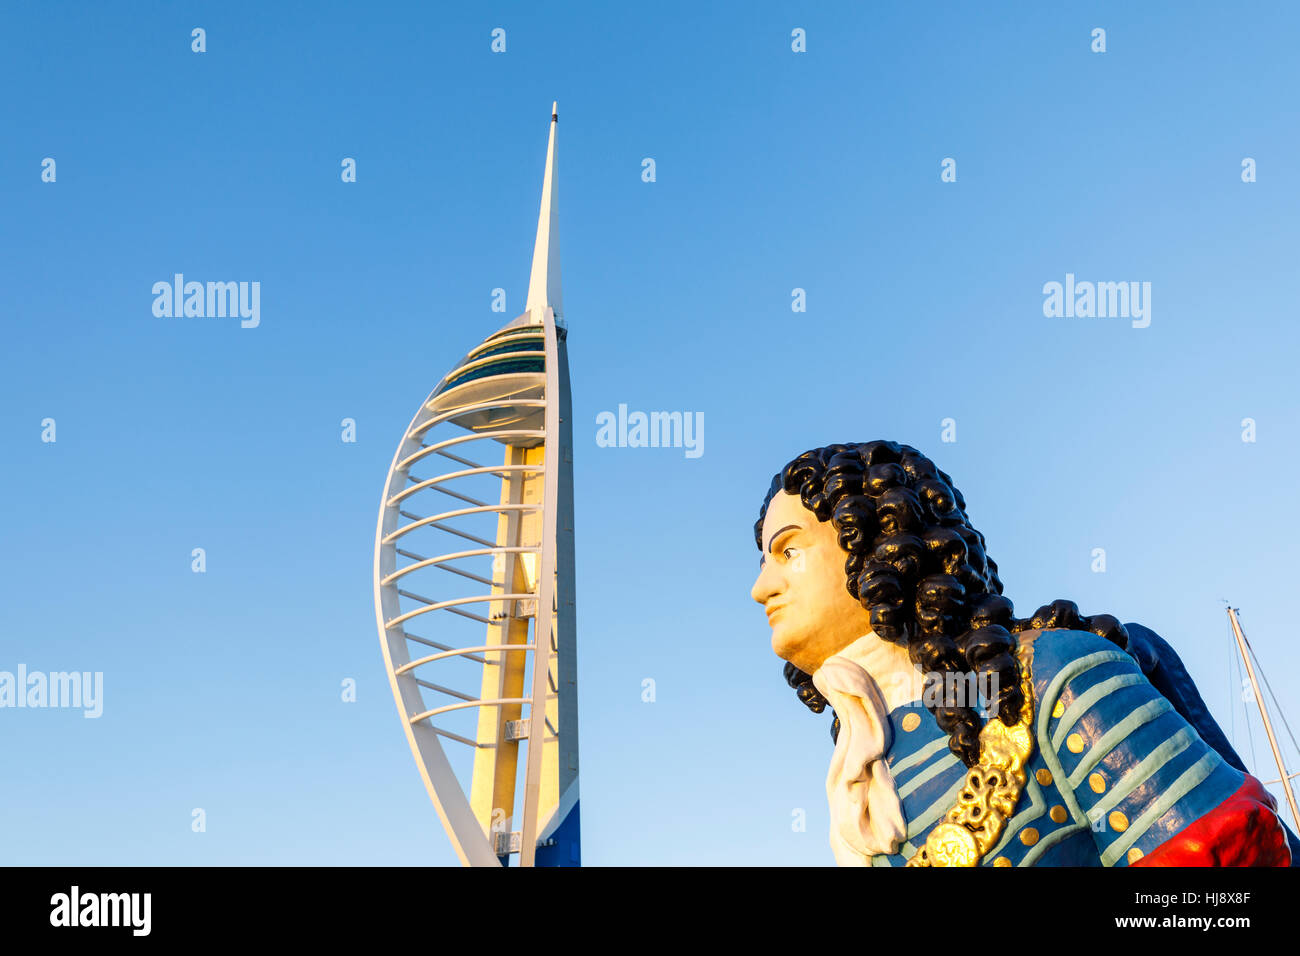 Figurehead of HMS Marlborough and the Emirates Spinnaker Tower at Gunwharf Quays, Portsmouth Harbour, Hampshire, - Stock Image